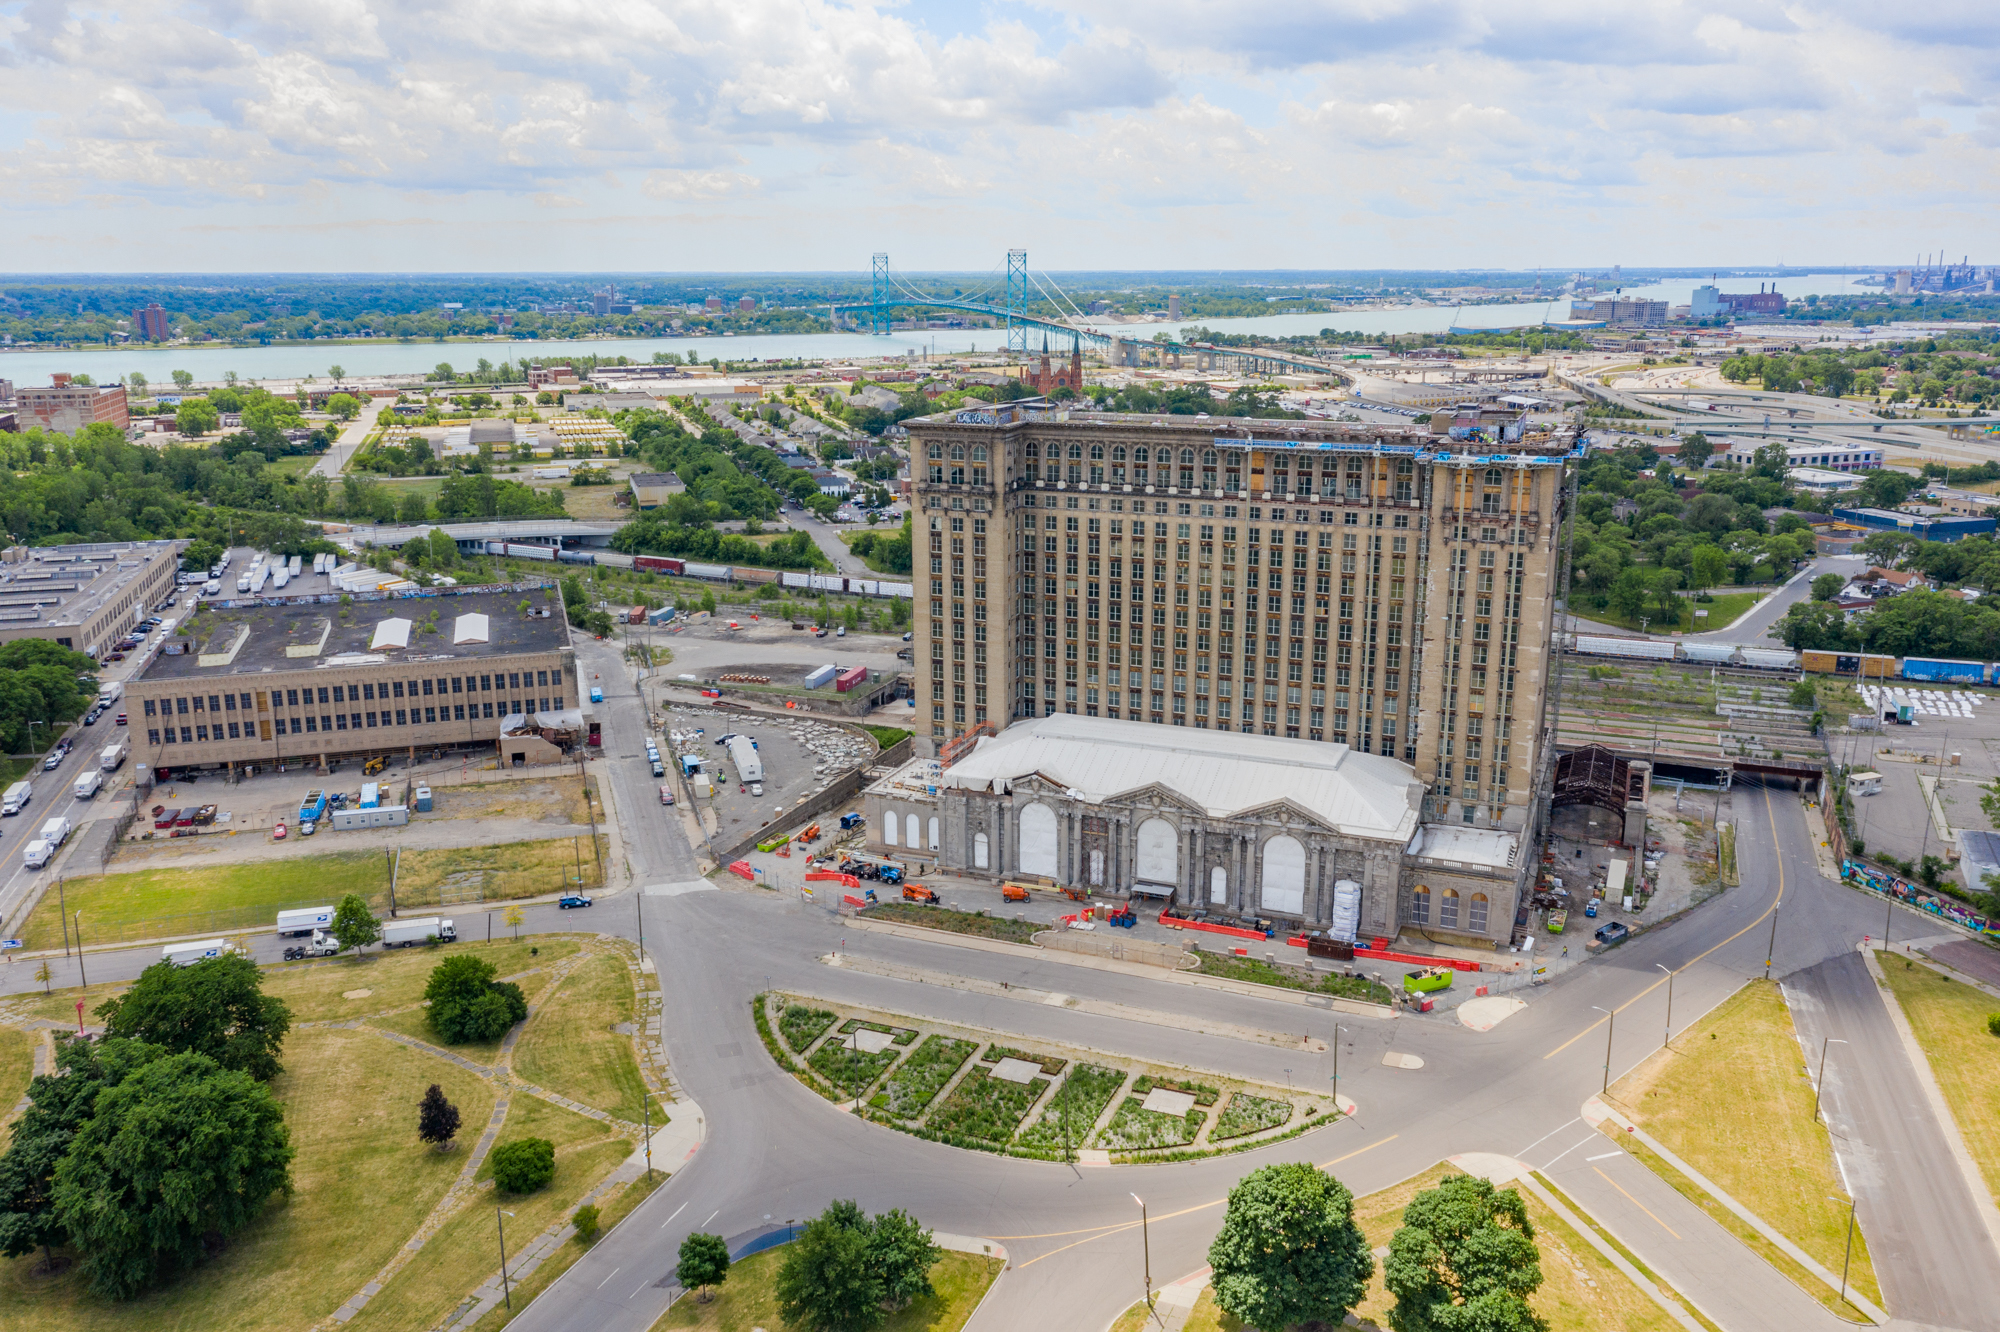 Michigan Central Station Centerpiece of Fords Corktown Campus